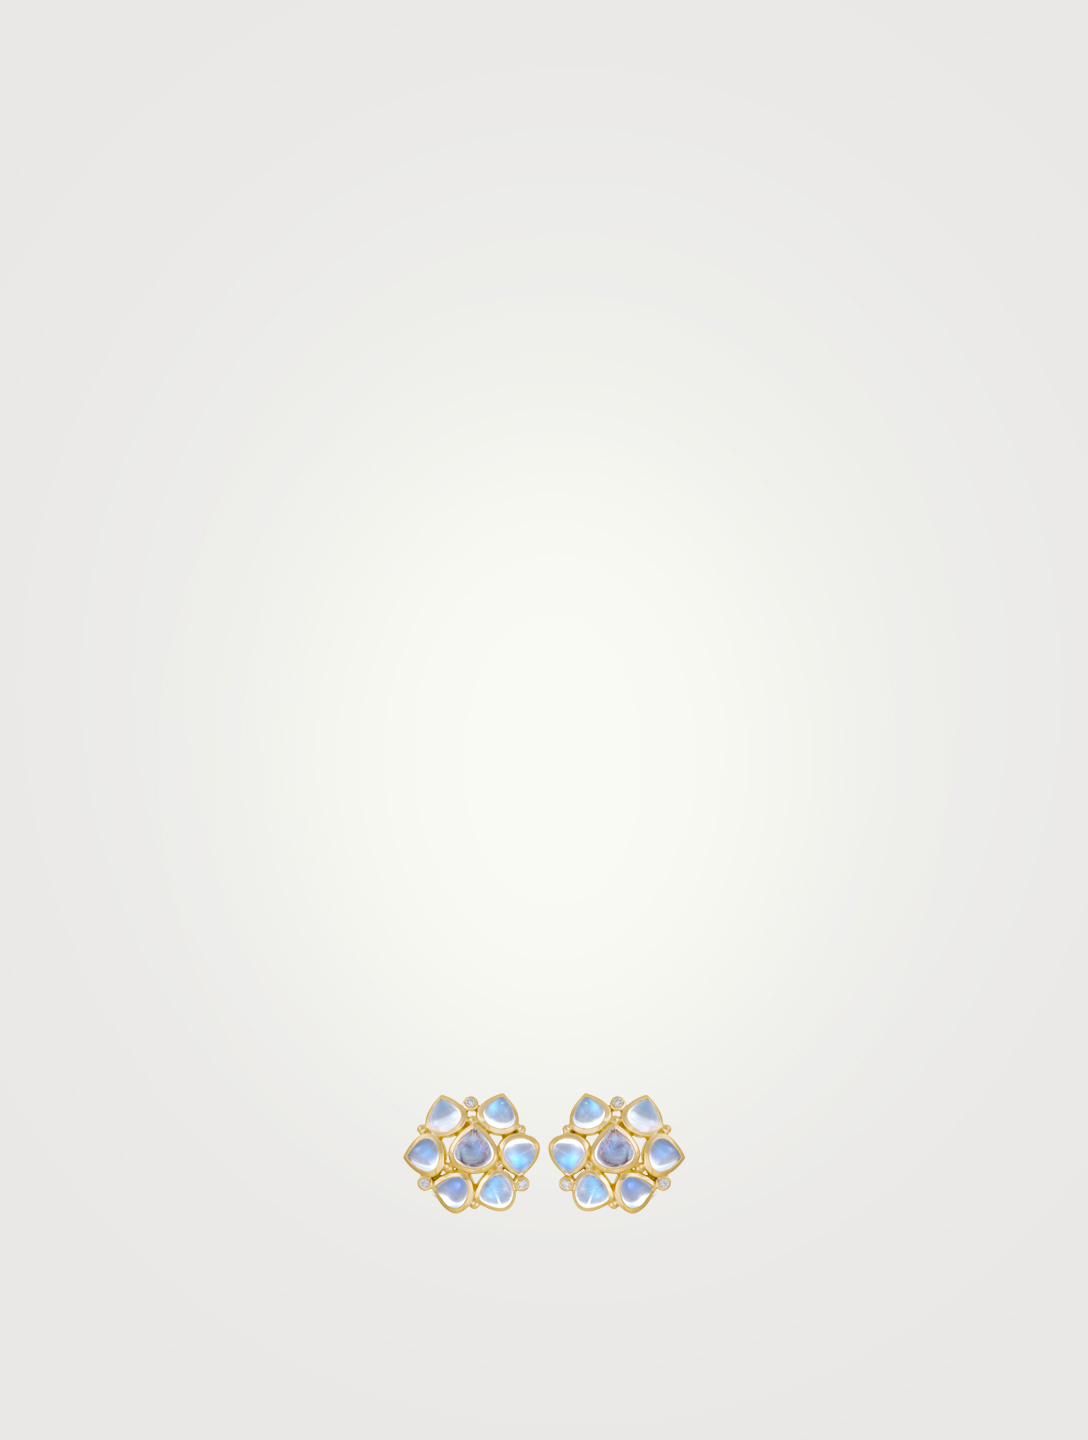 TEMPLE ST. CLAIR Small 18K Gold Cluster Earrings With Royal Blue Moonstone And Diamonds Women's Gold